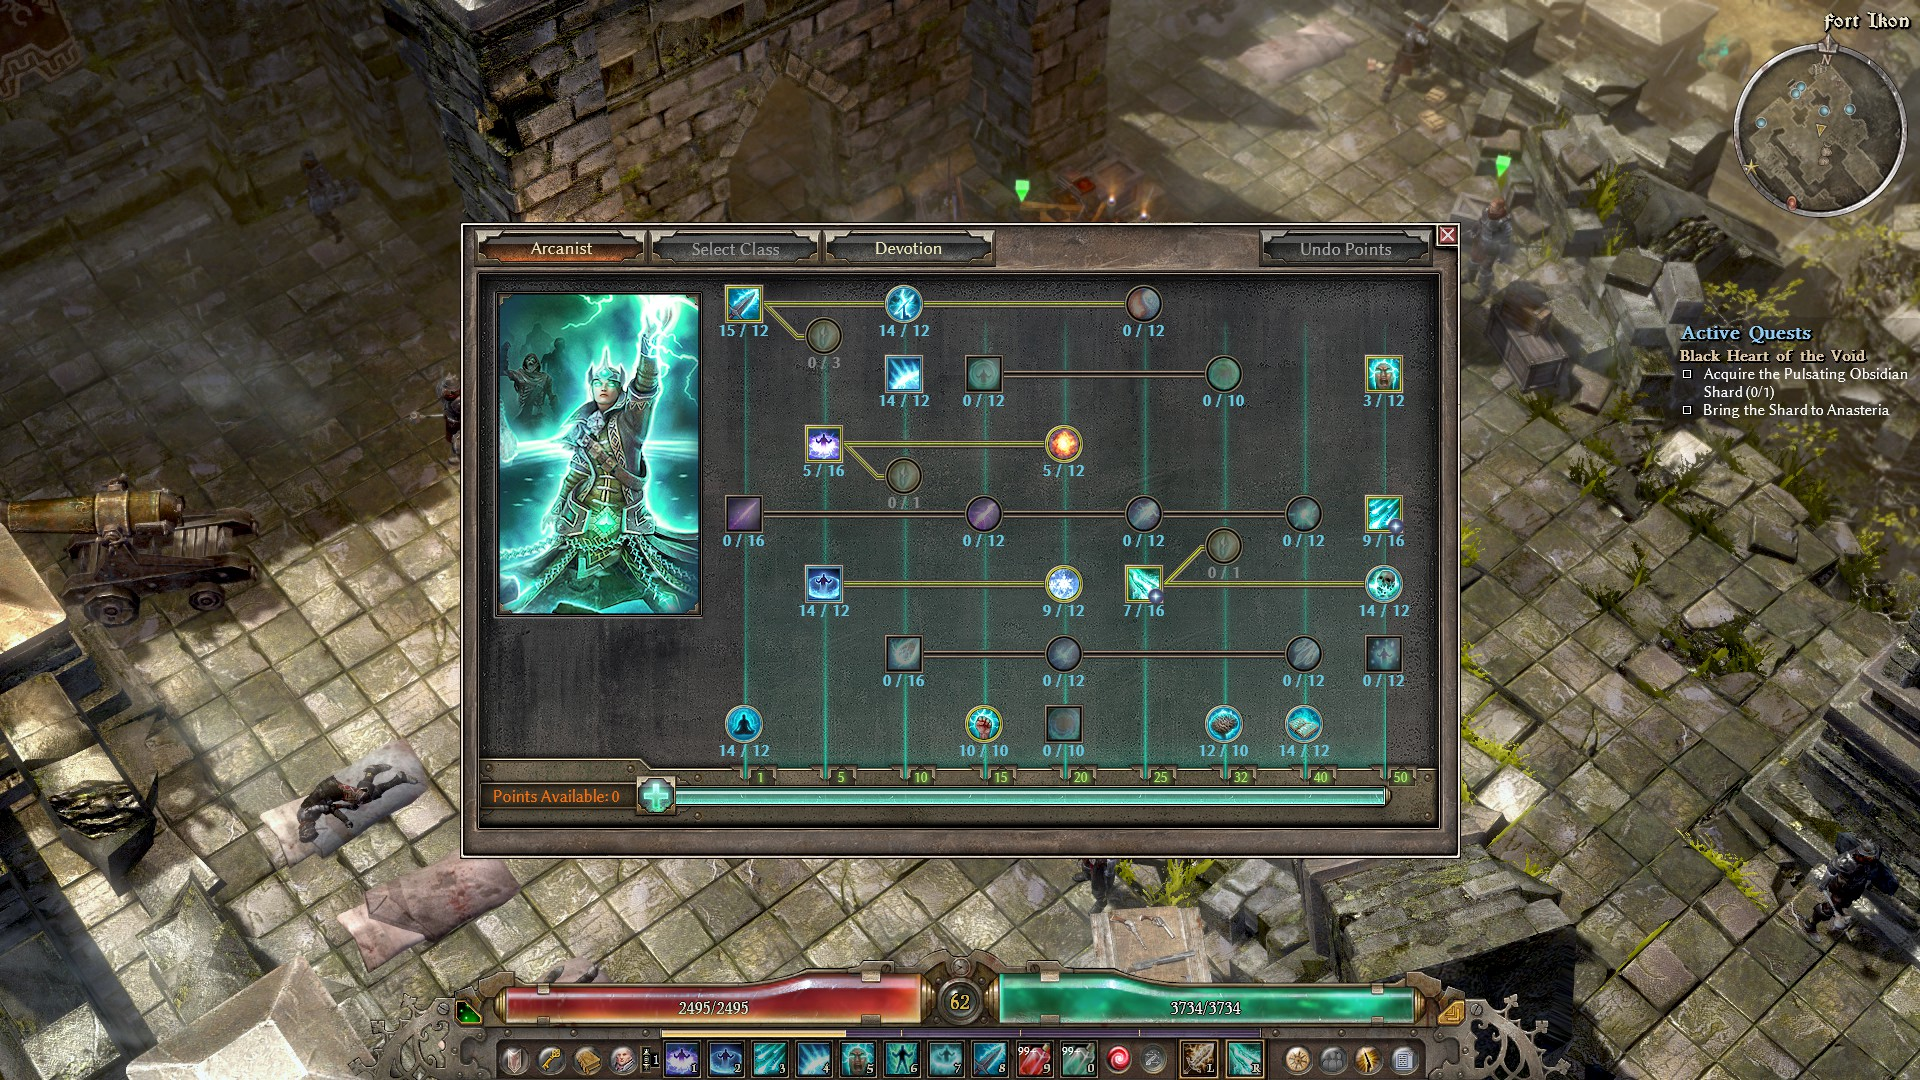 Steam Community :: Guide :: Pure Arcanist - Rise of the